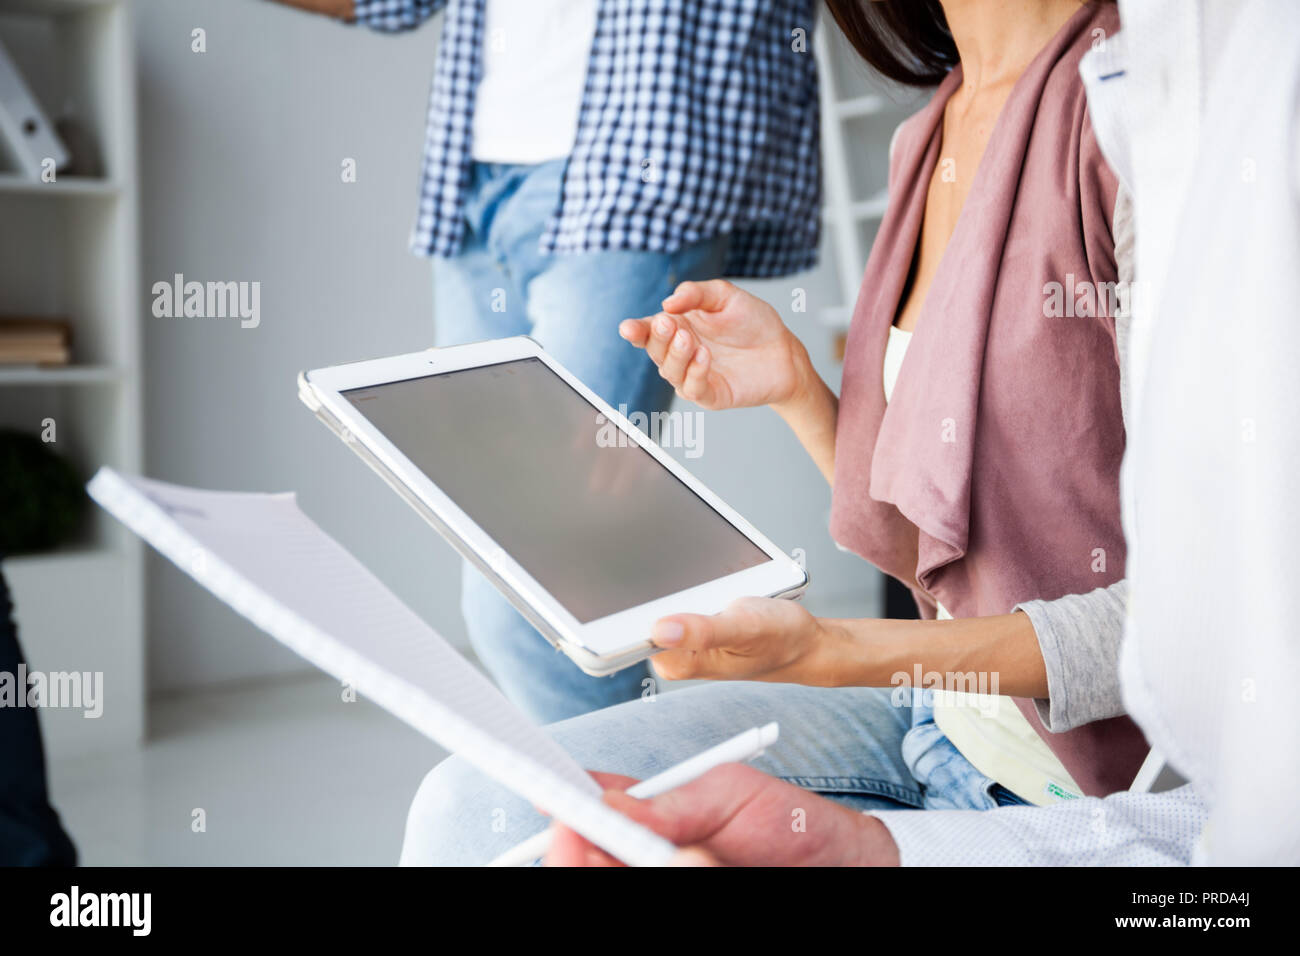 Business, office concept. Woman's hands using tablet with financial document - Stock Image